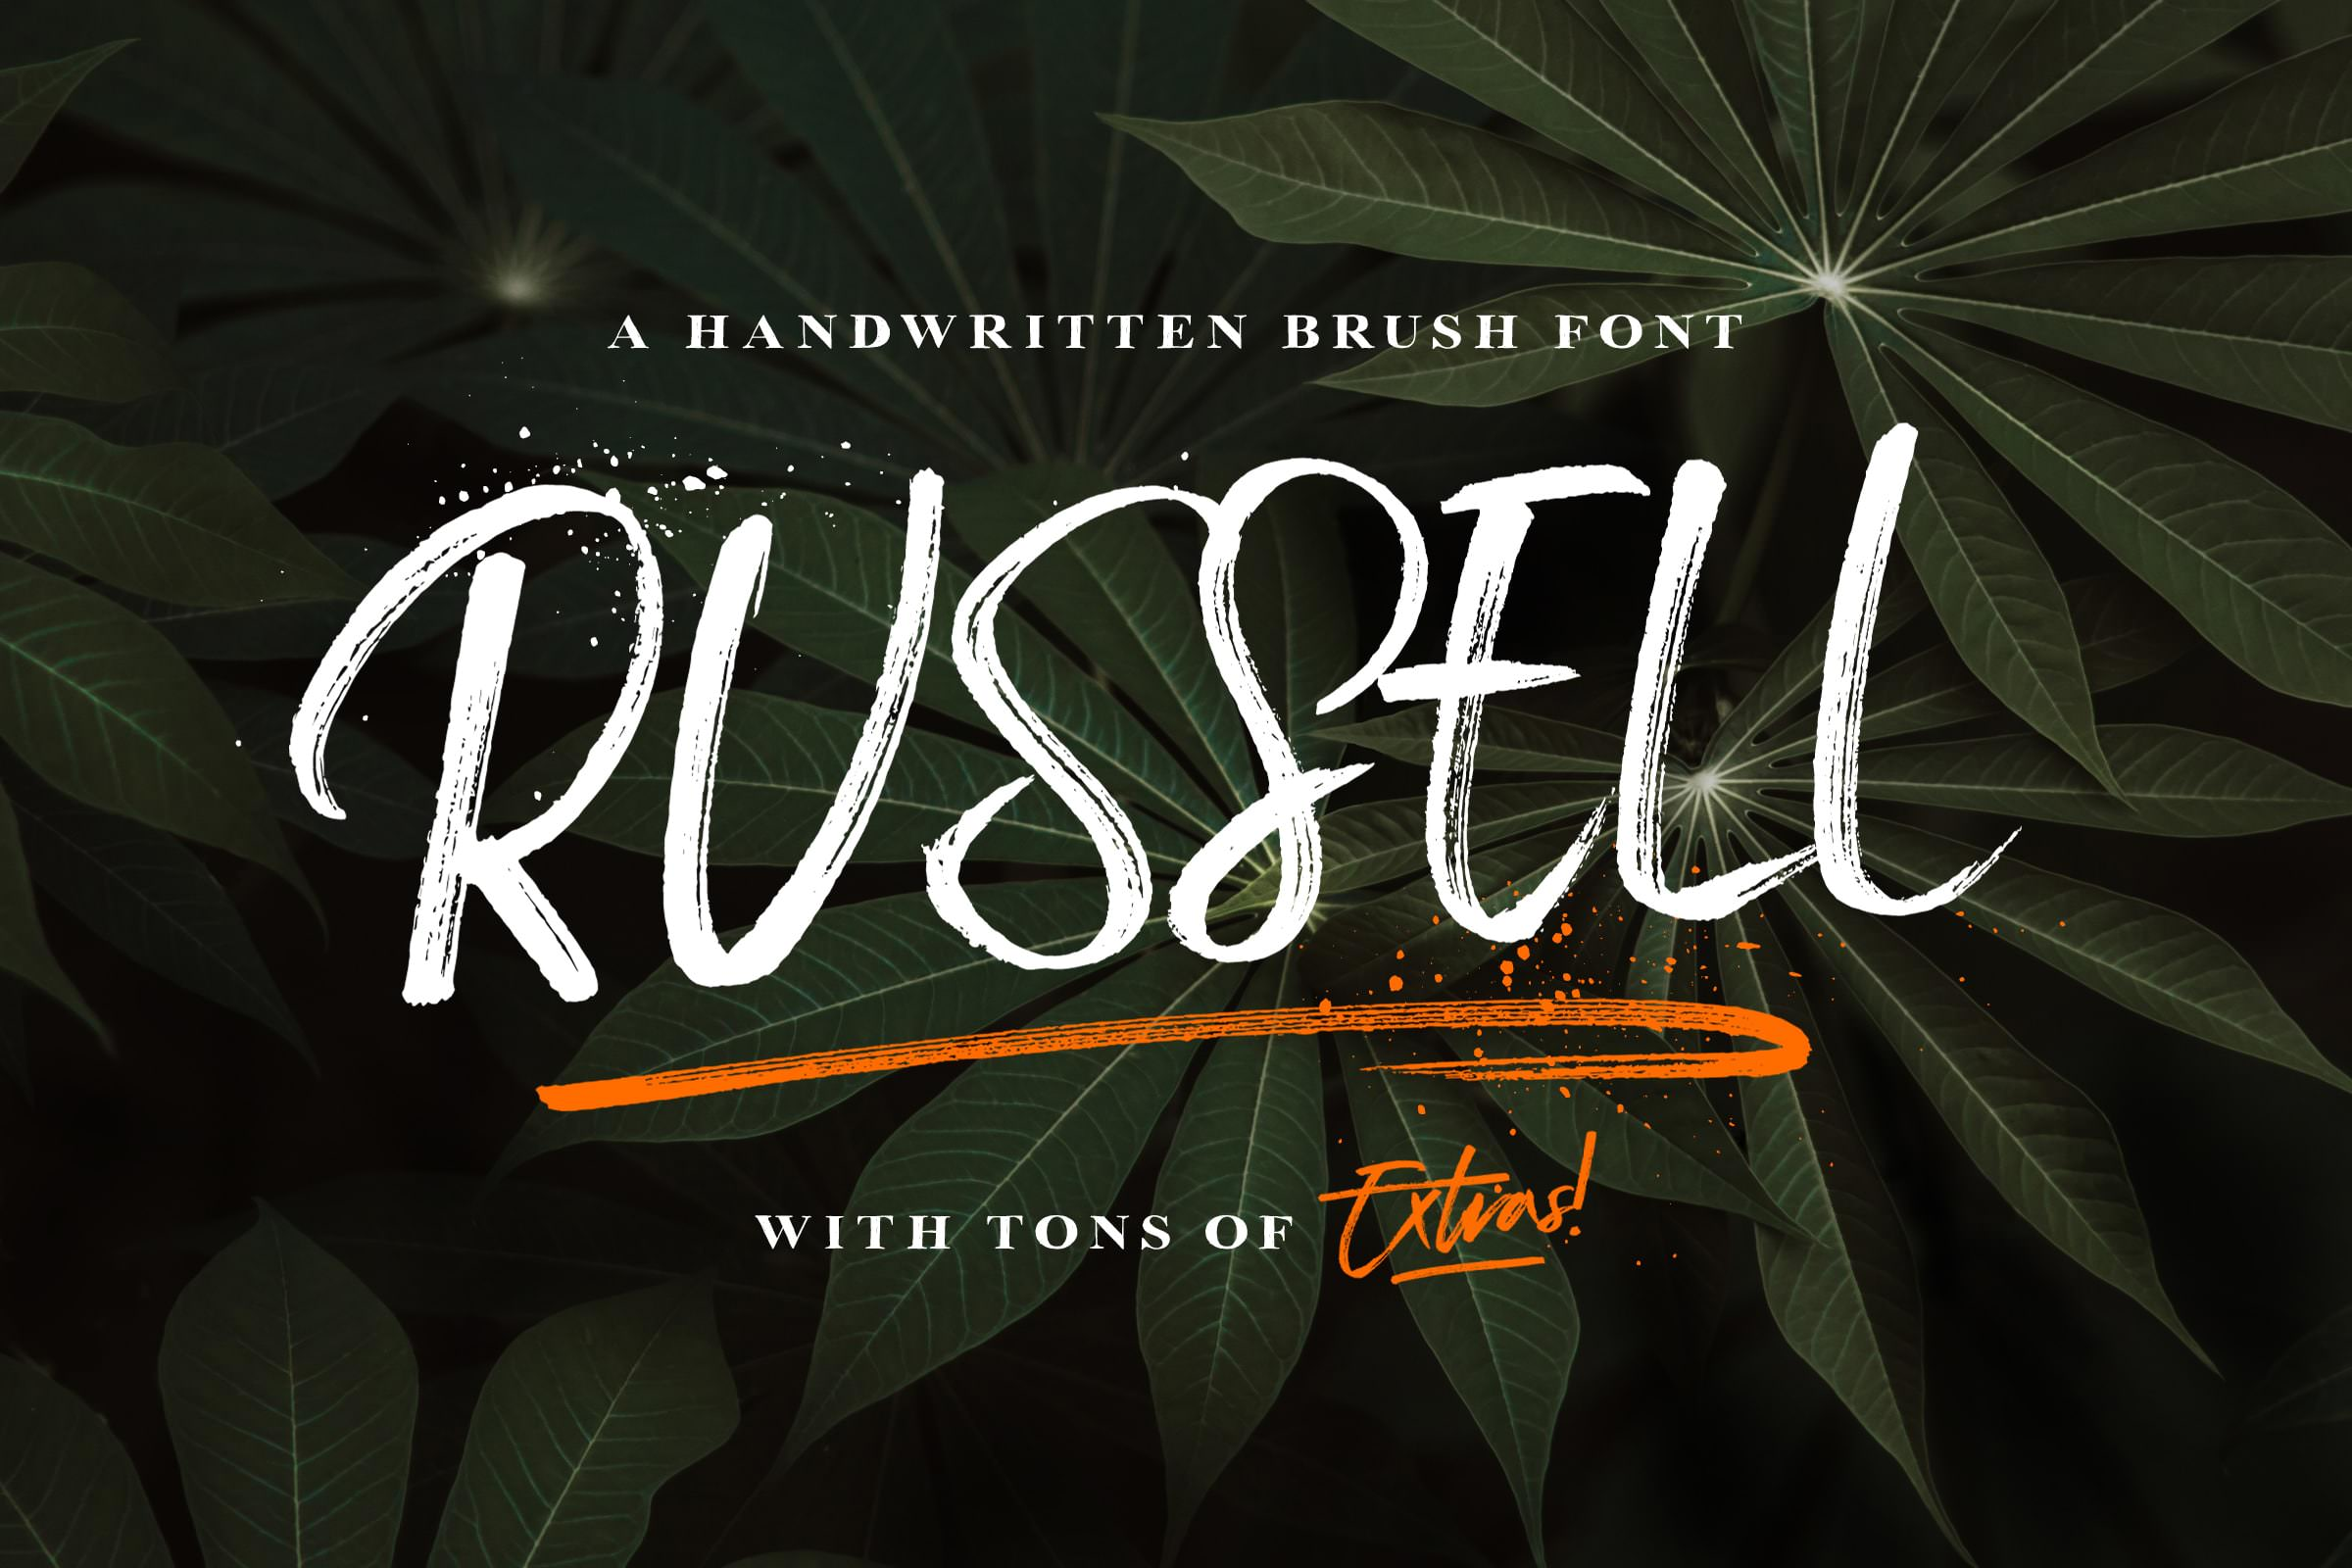 Russell brush script font & extras tom chalky